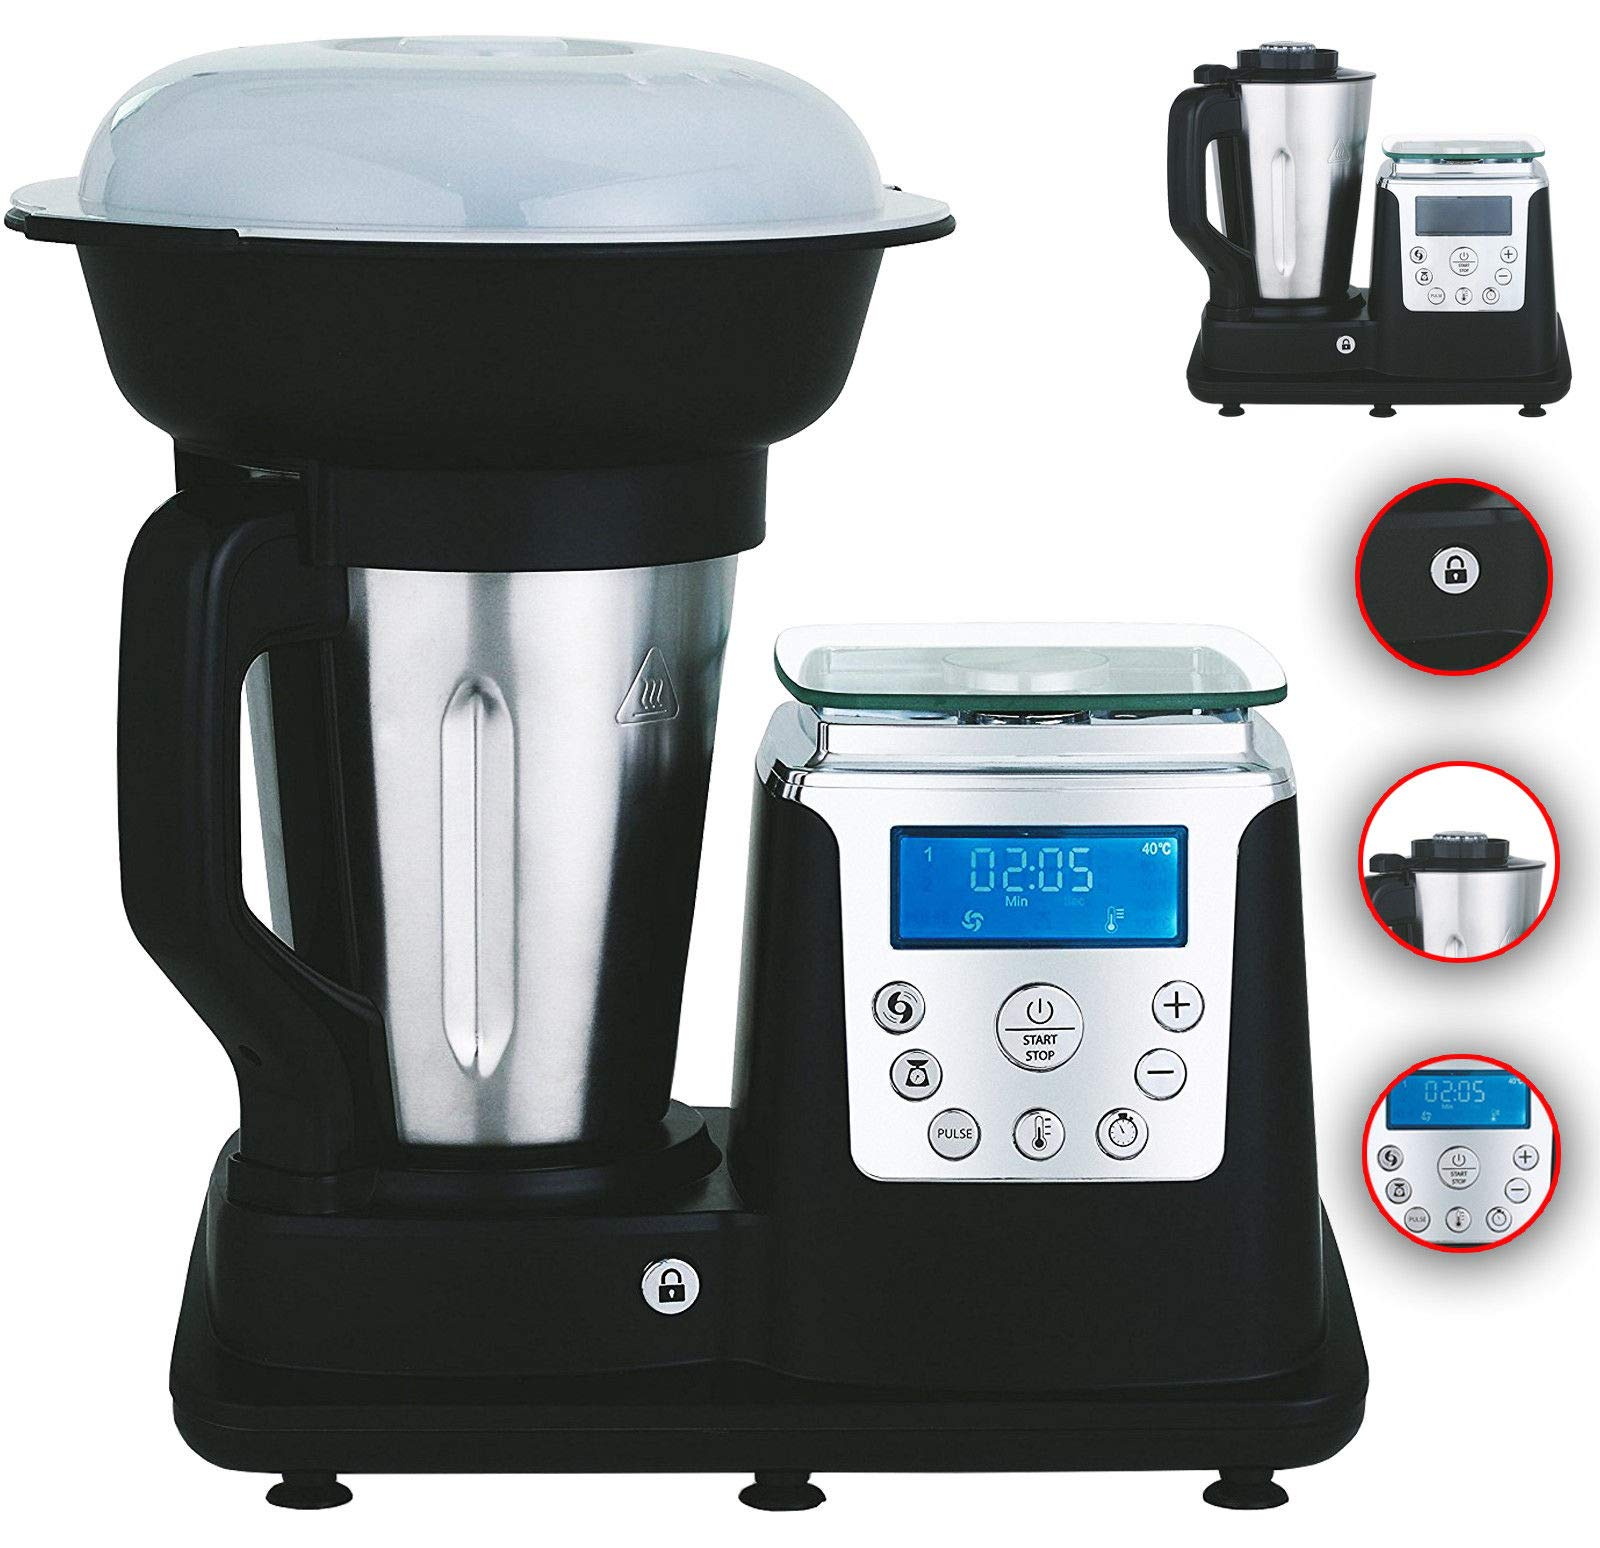 10 en 1thermo Multi Robot cocina 1350 W cocina Mixer negro: Amazon ...